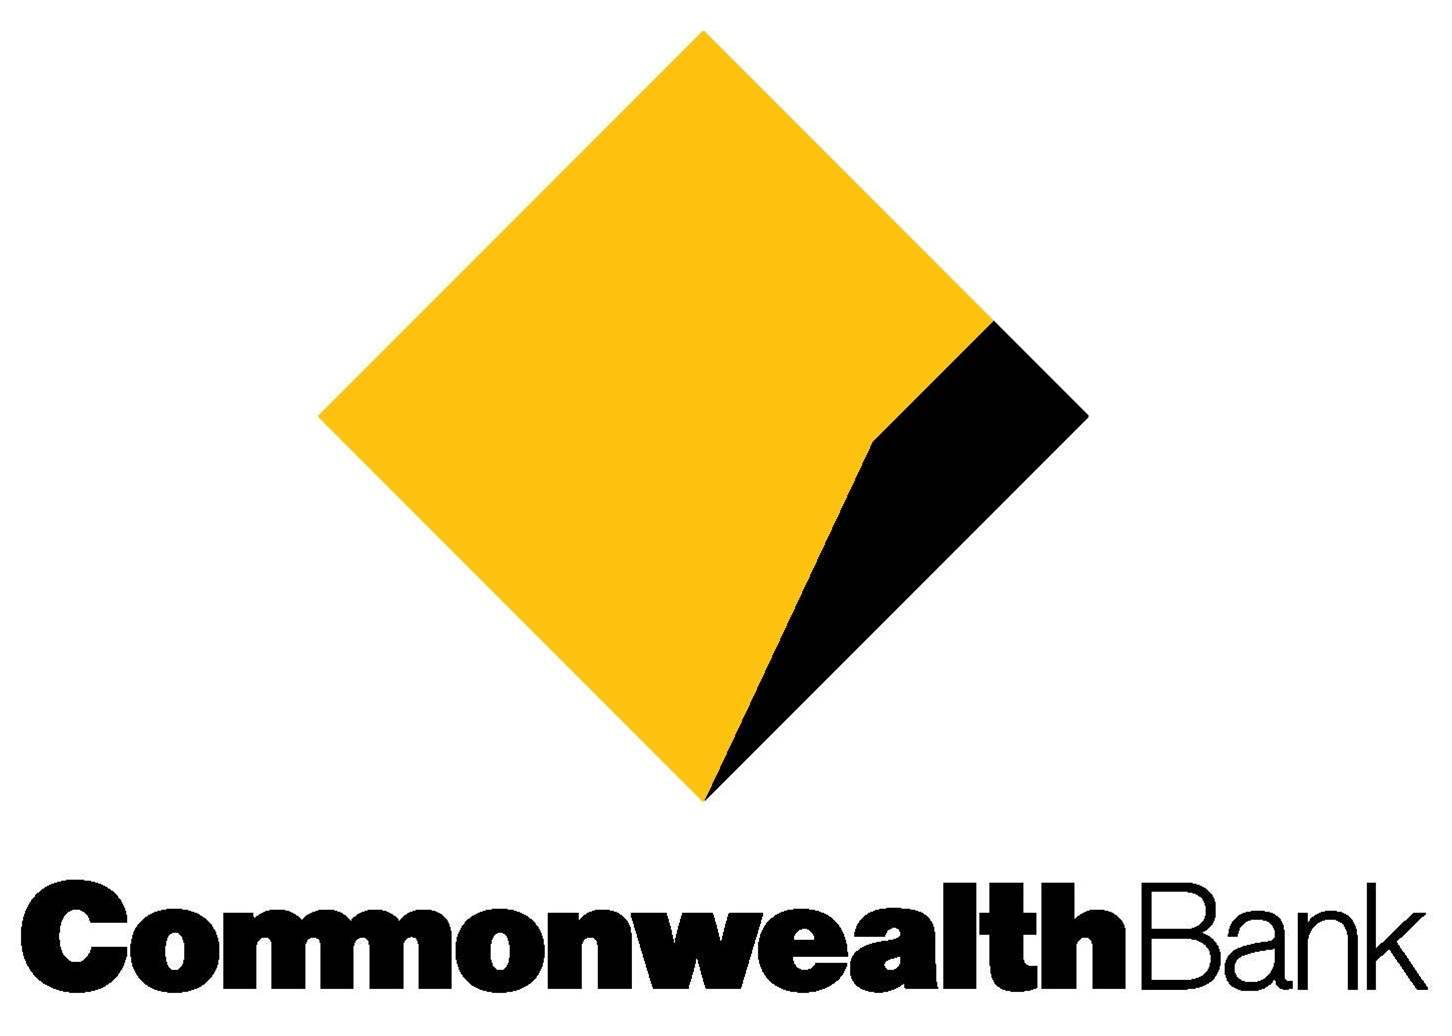 System error hits CommBank ATMs